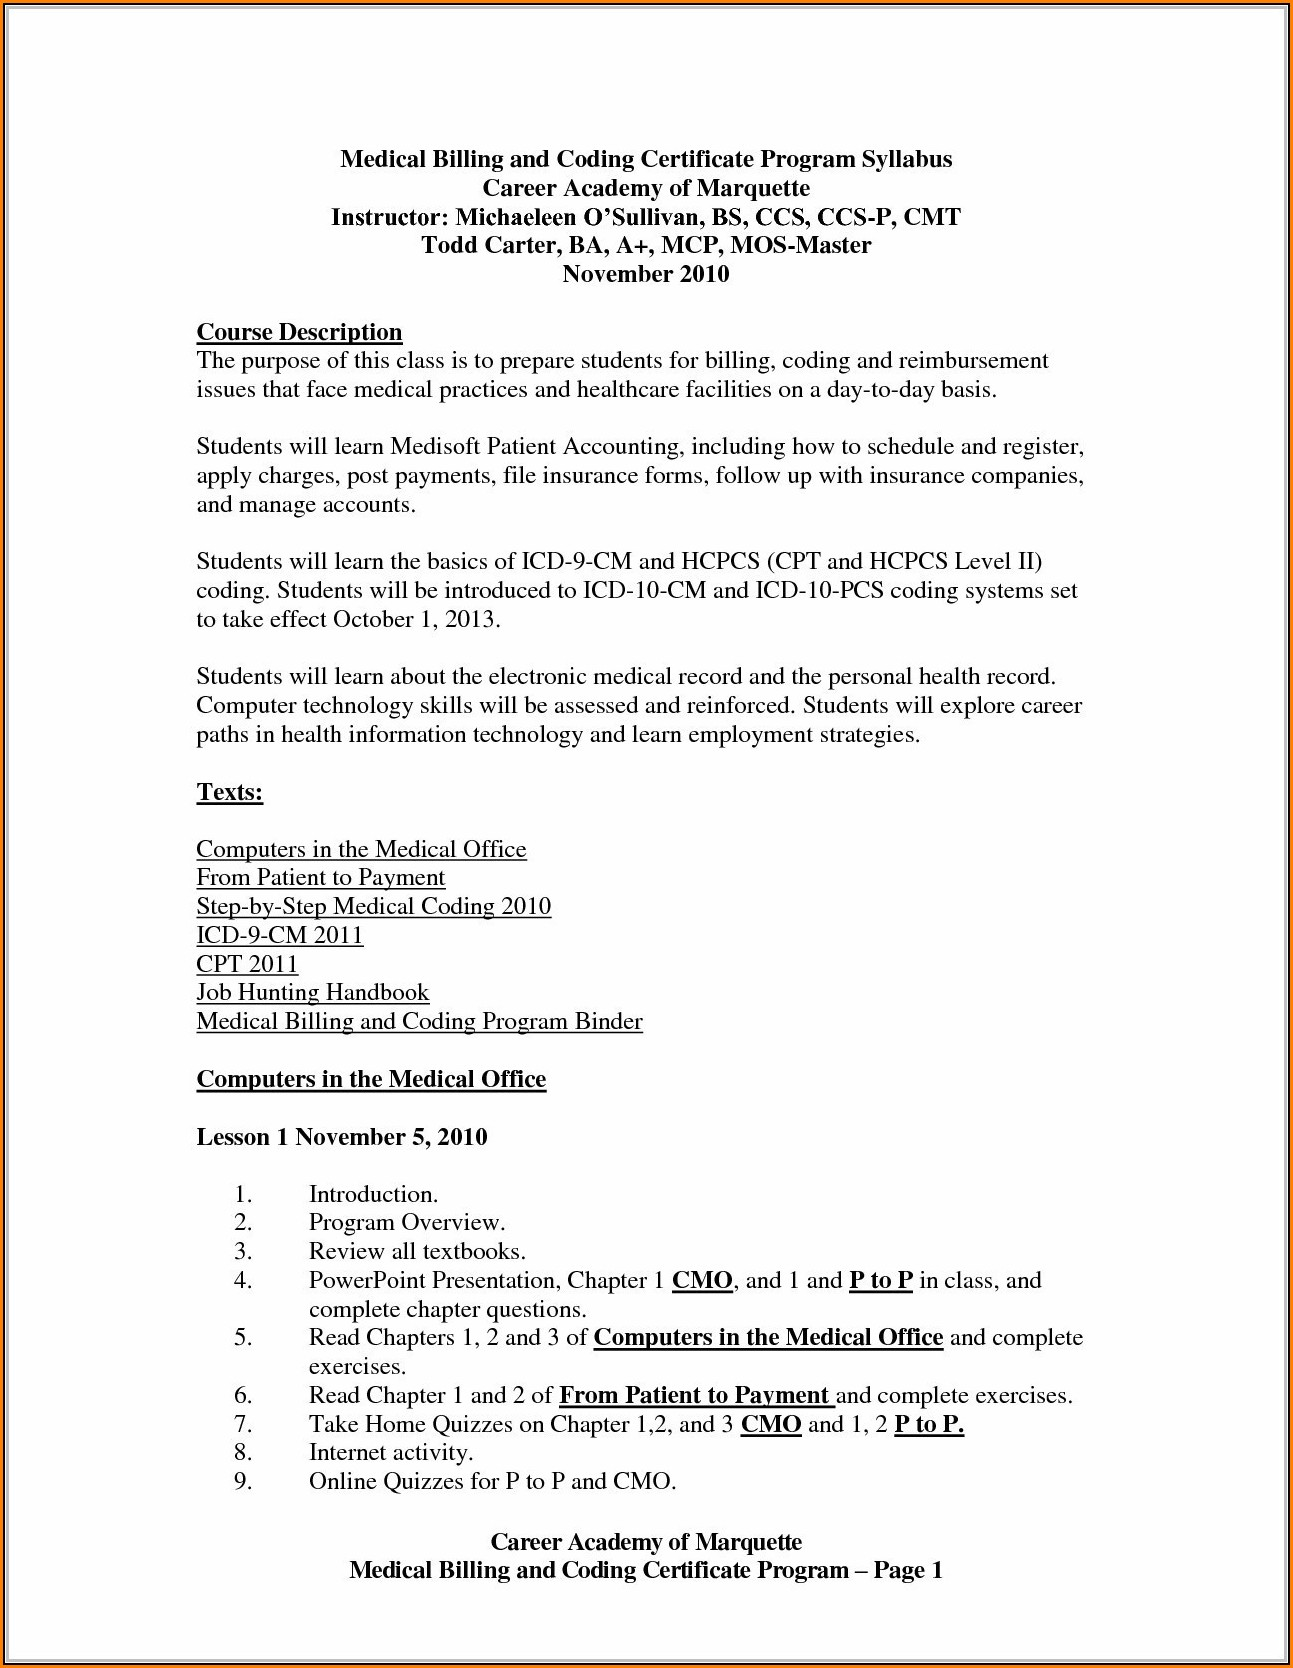 Cover Letter For Medical Billing And Coding